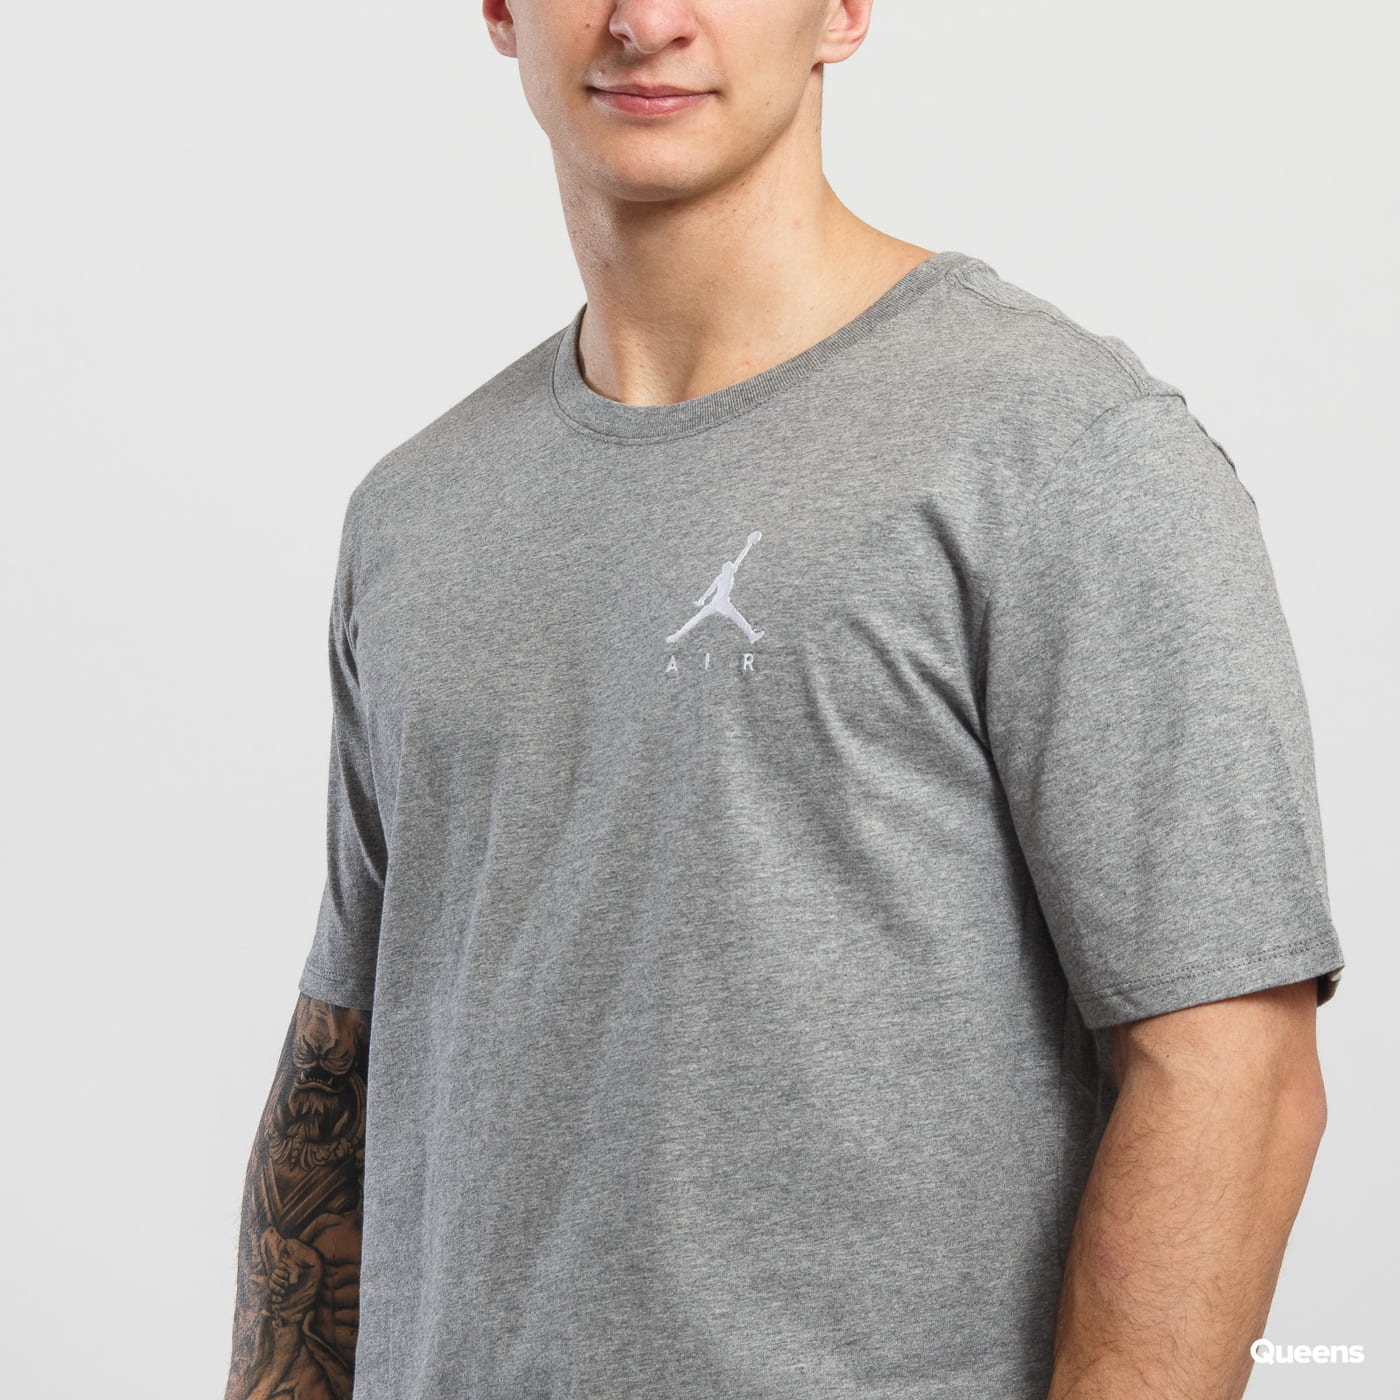 Jordan Jumpman Air Embroided Tee melange šedé